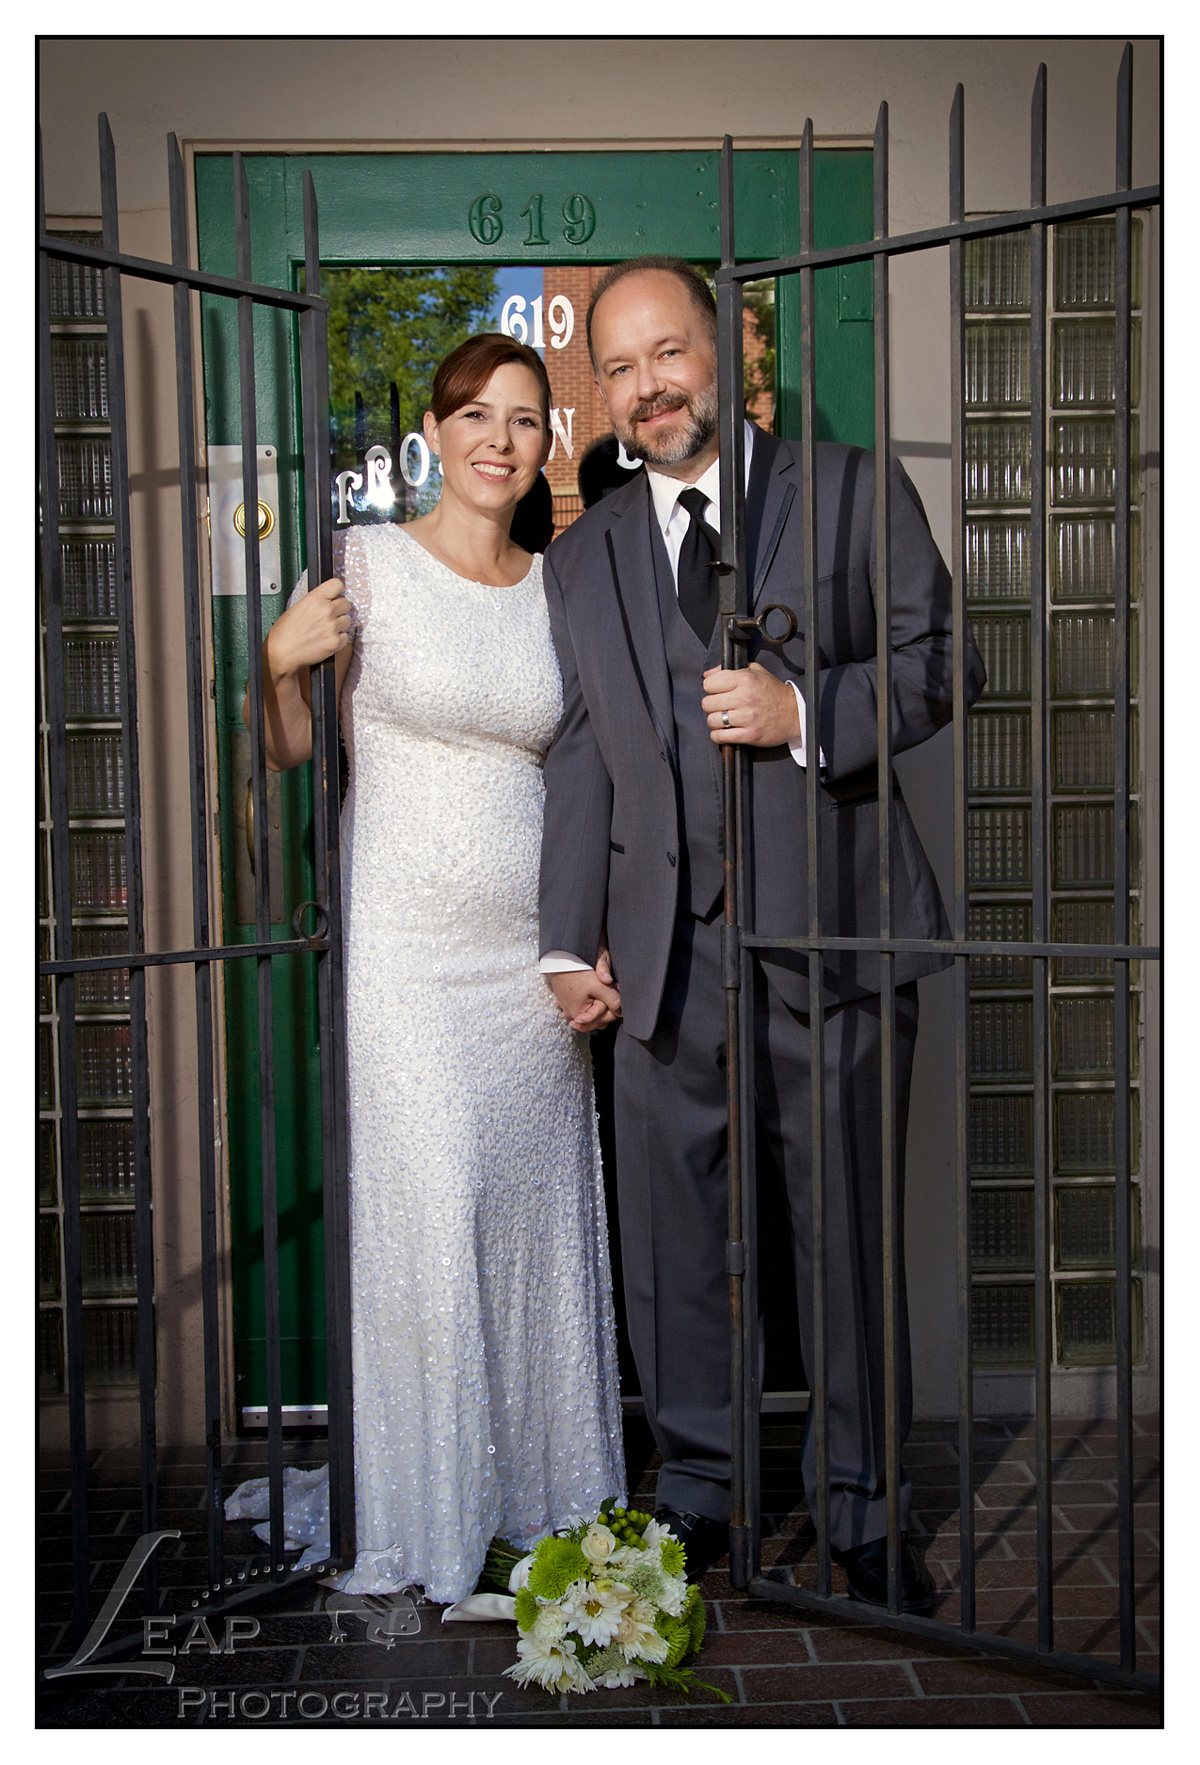 Wedding Picture taken in dowtown Boise